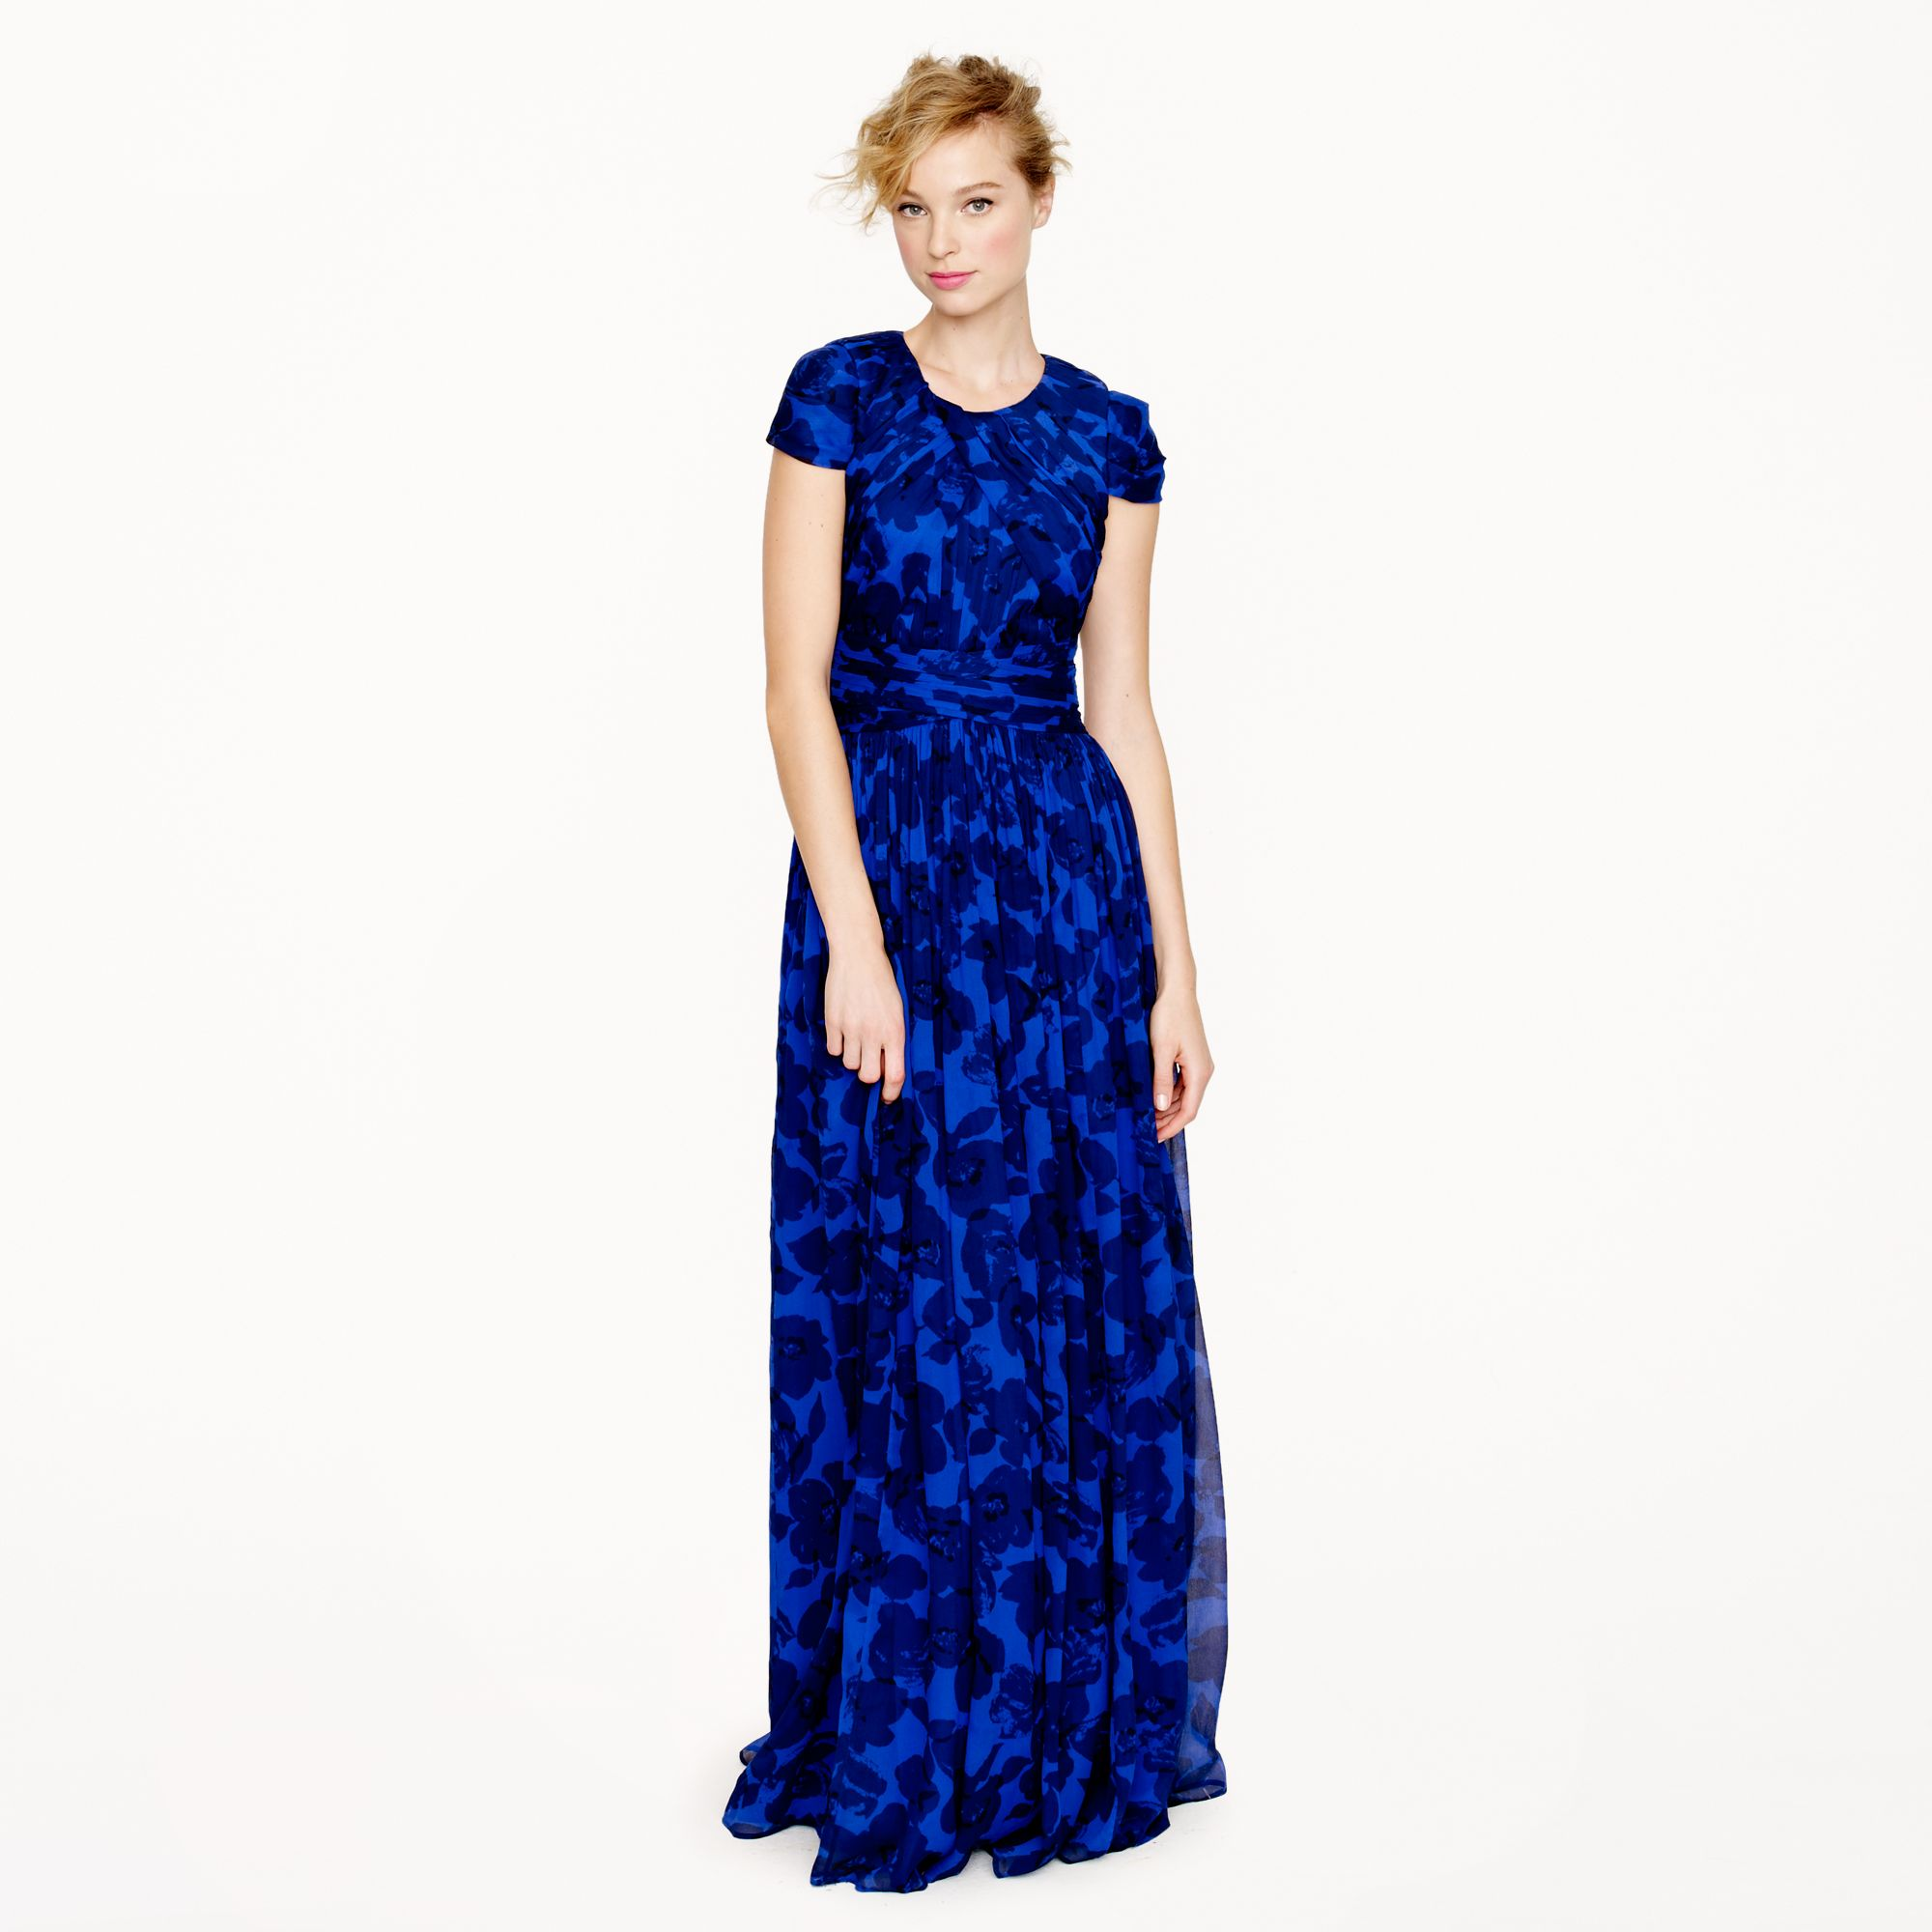 J.Crew Collection Dauphine Gown in Watercolor Floral in Purple - Lyst